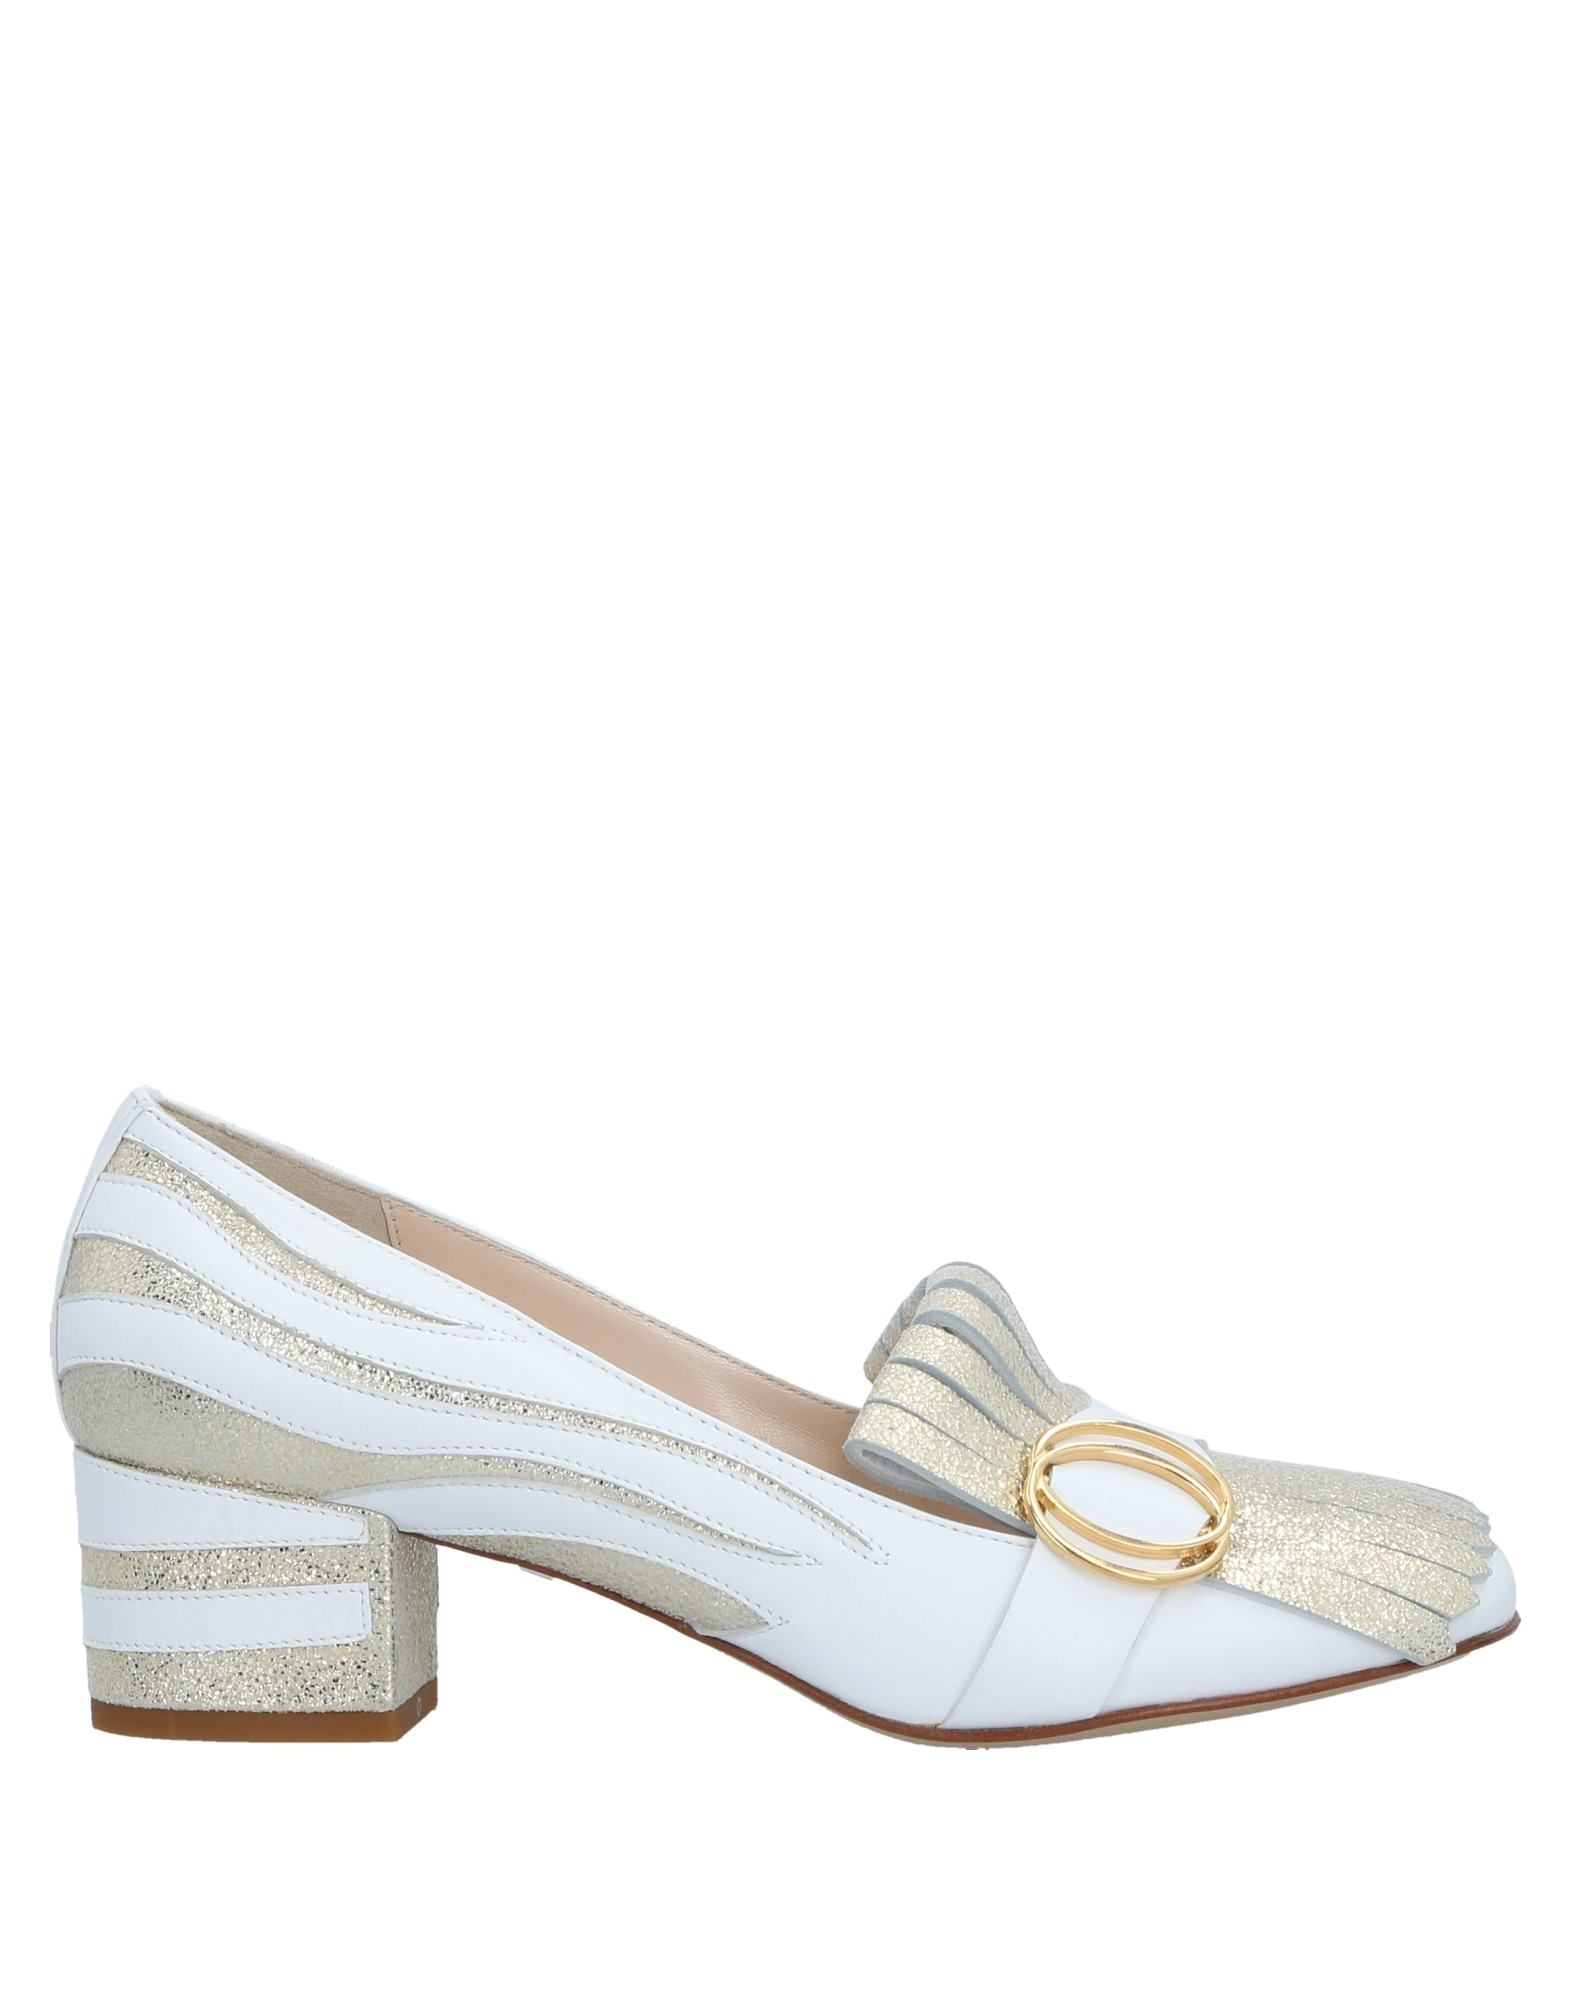 Franco Colli Loafers - Women Franco Colli Loafers online 11534936RD on  Australia - 11534936RD online 60a727